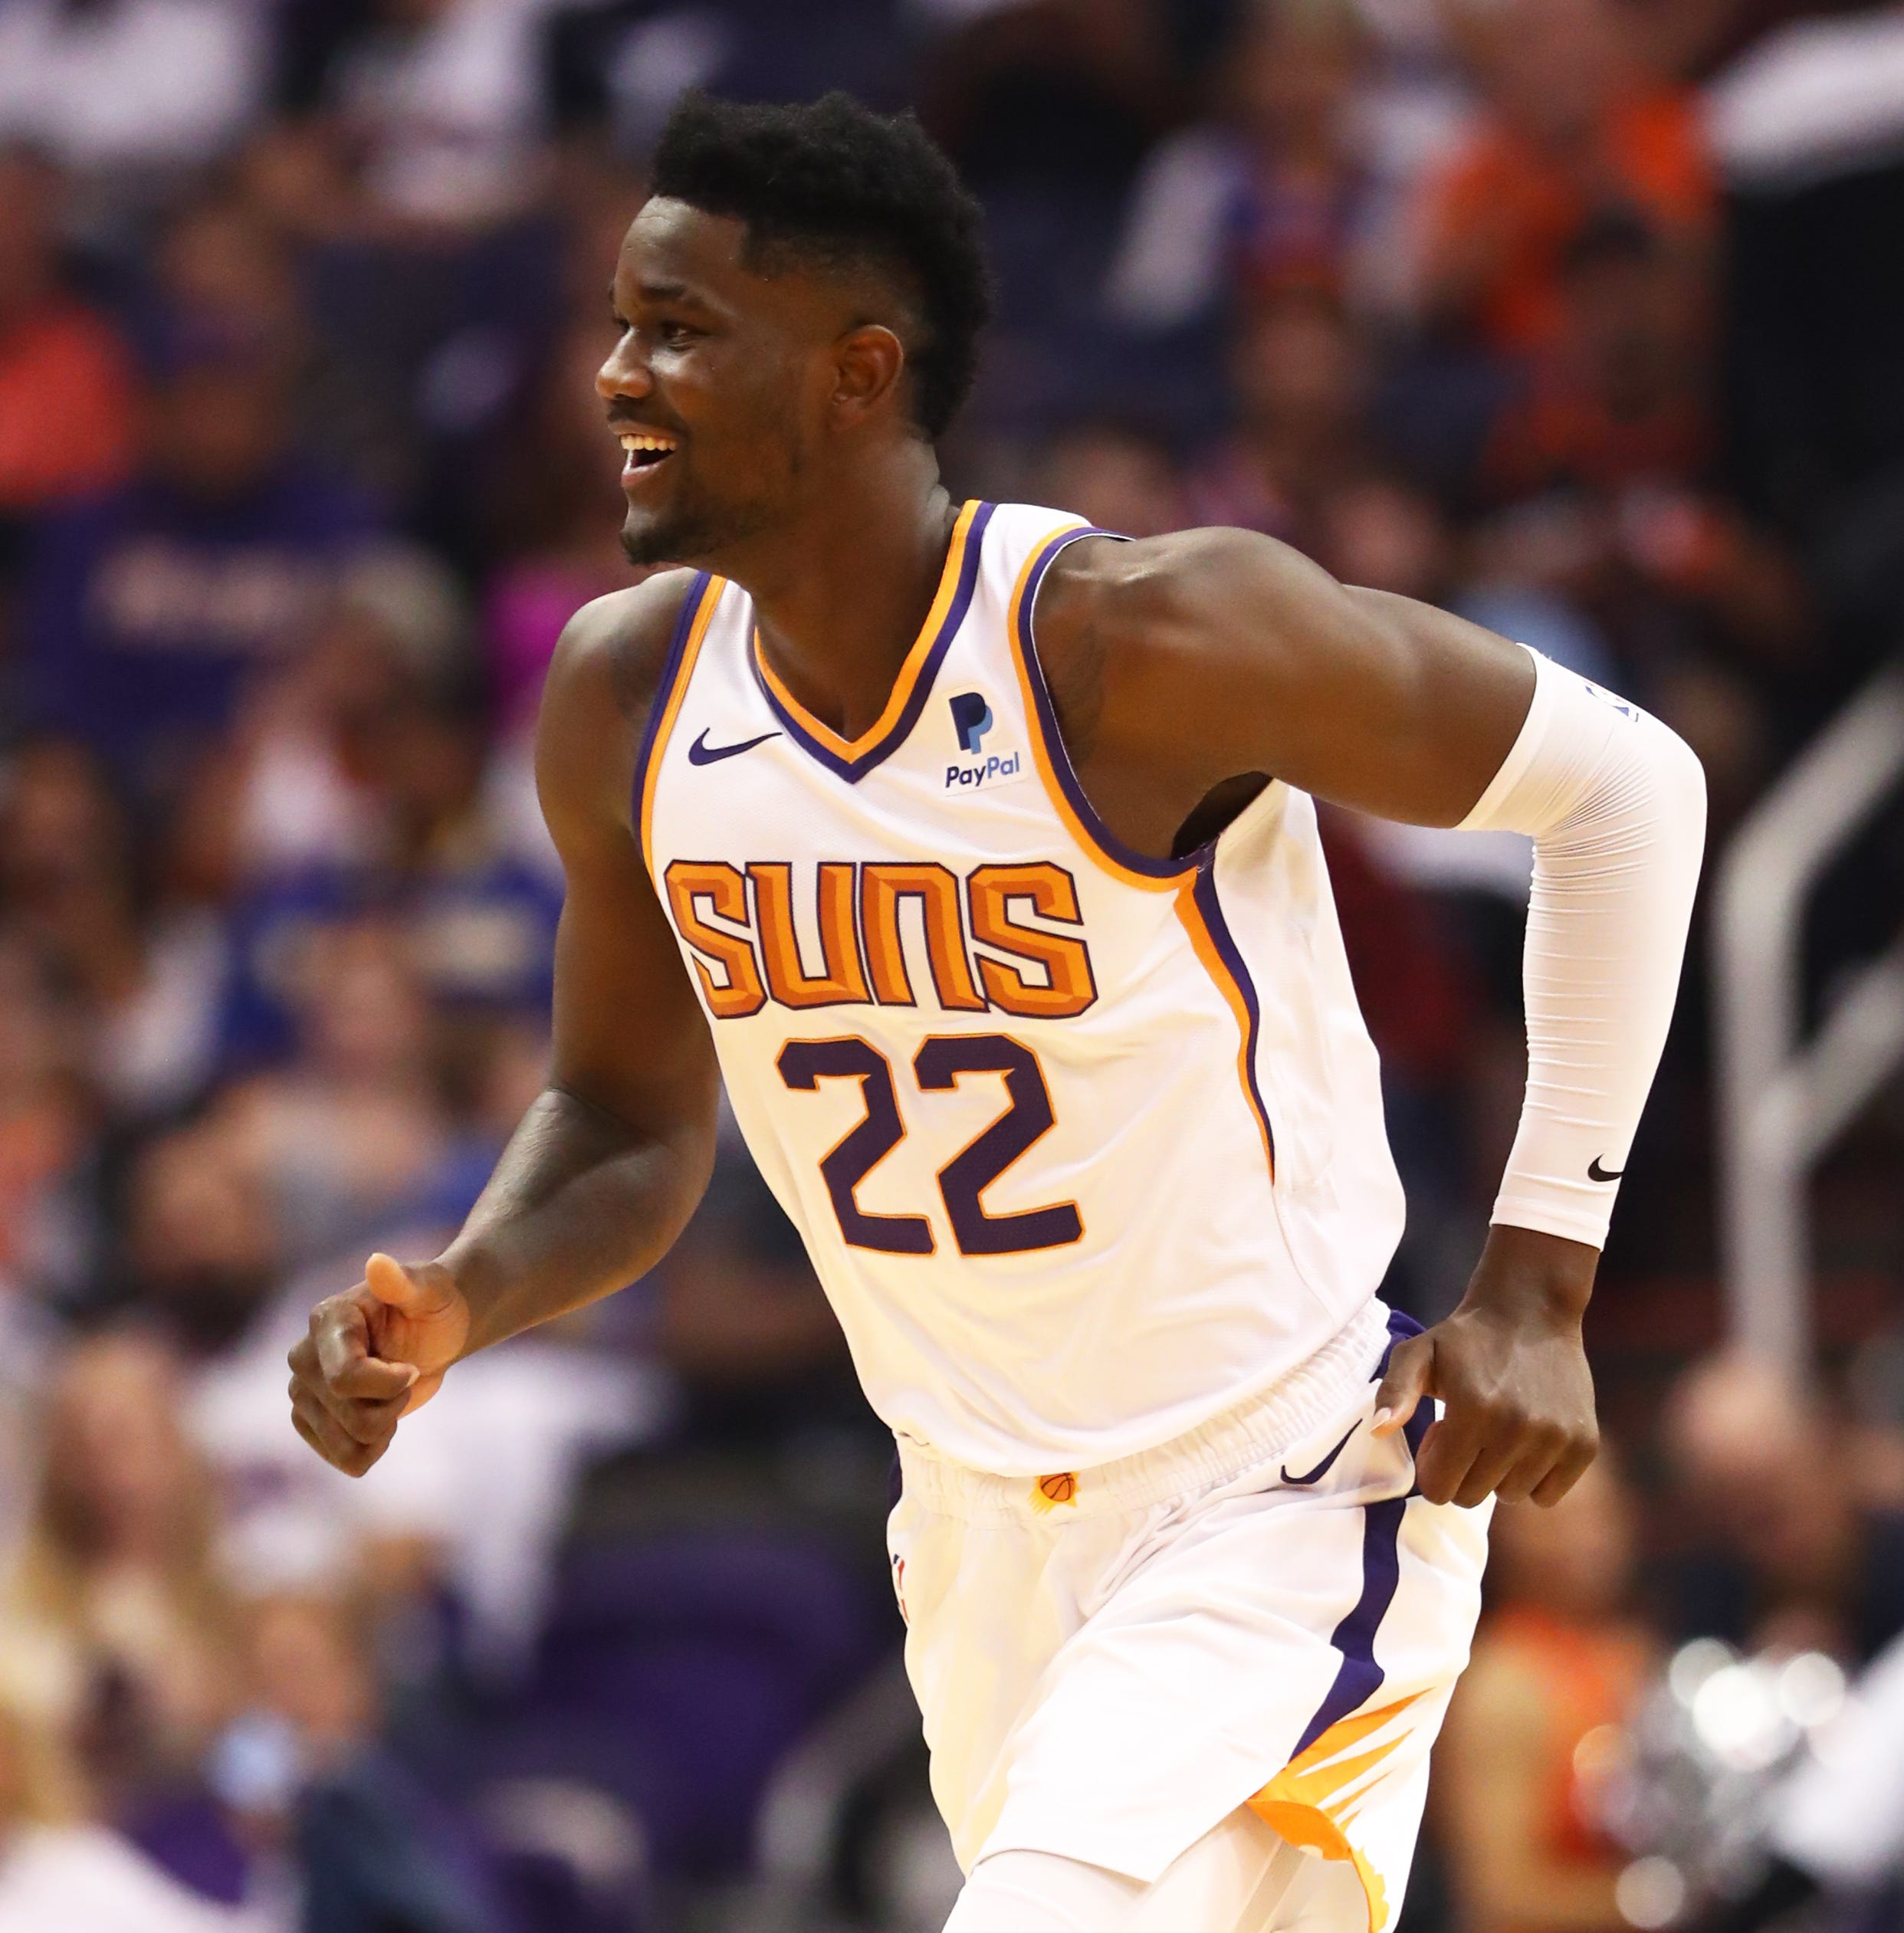 Phoenix Suns rookie Deandre Ayton scores and rebounds, but more importantly he entertains